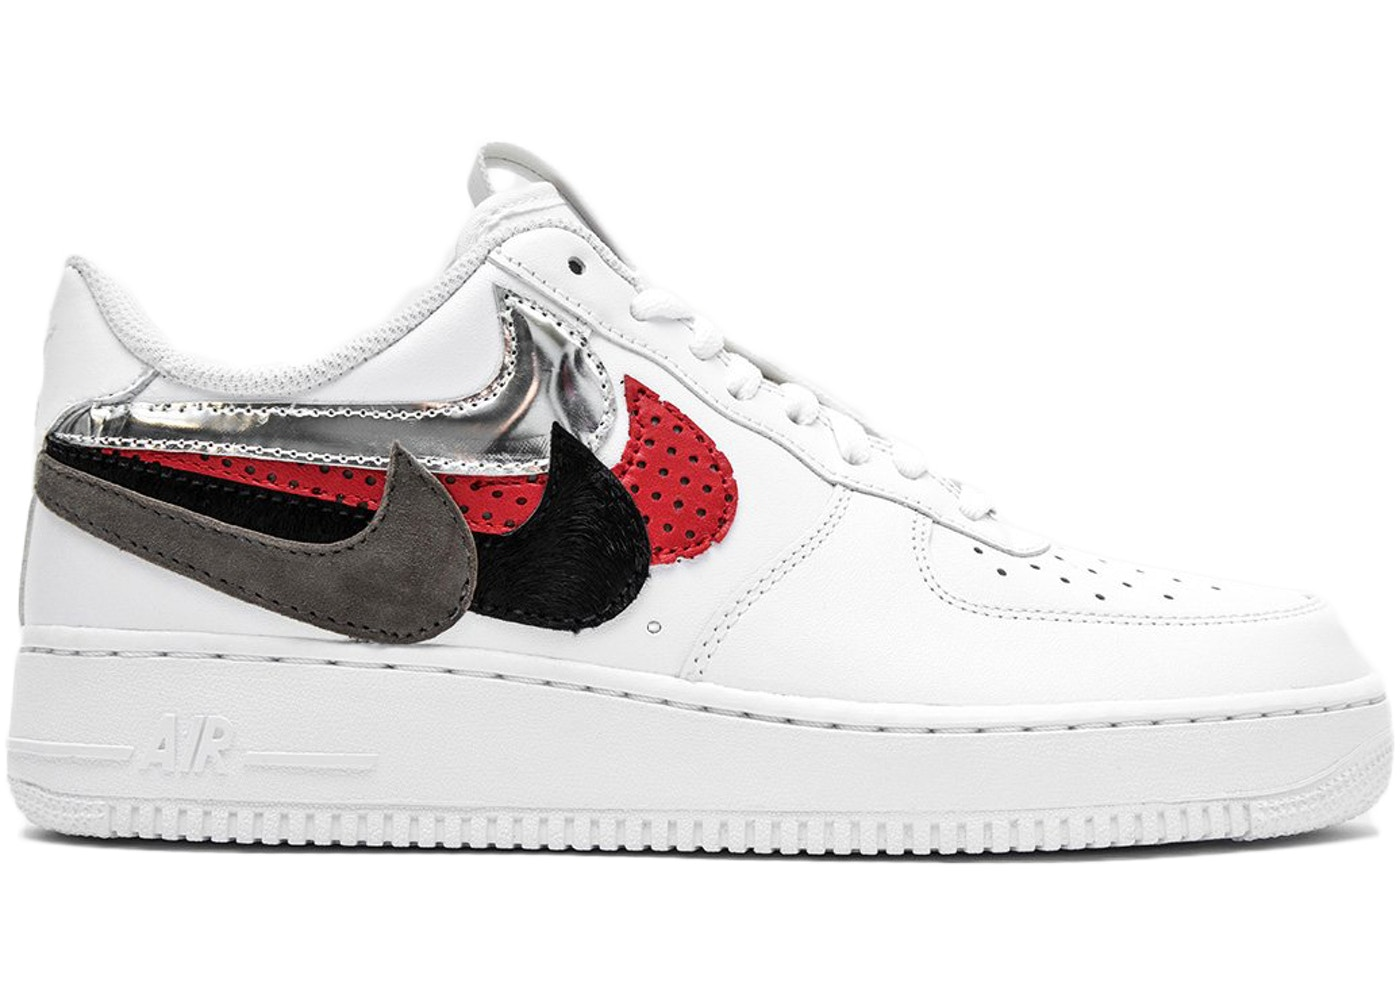 san francisco 425e8 01fb5 Air Force 1 Low John Geiger Misplaced Checks White - undefined